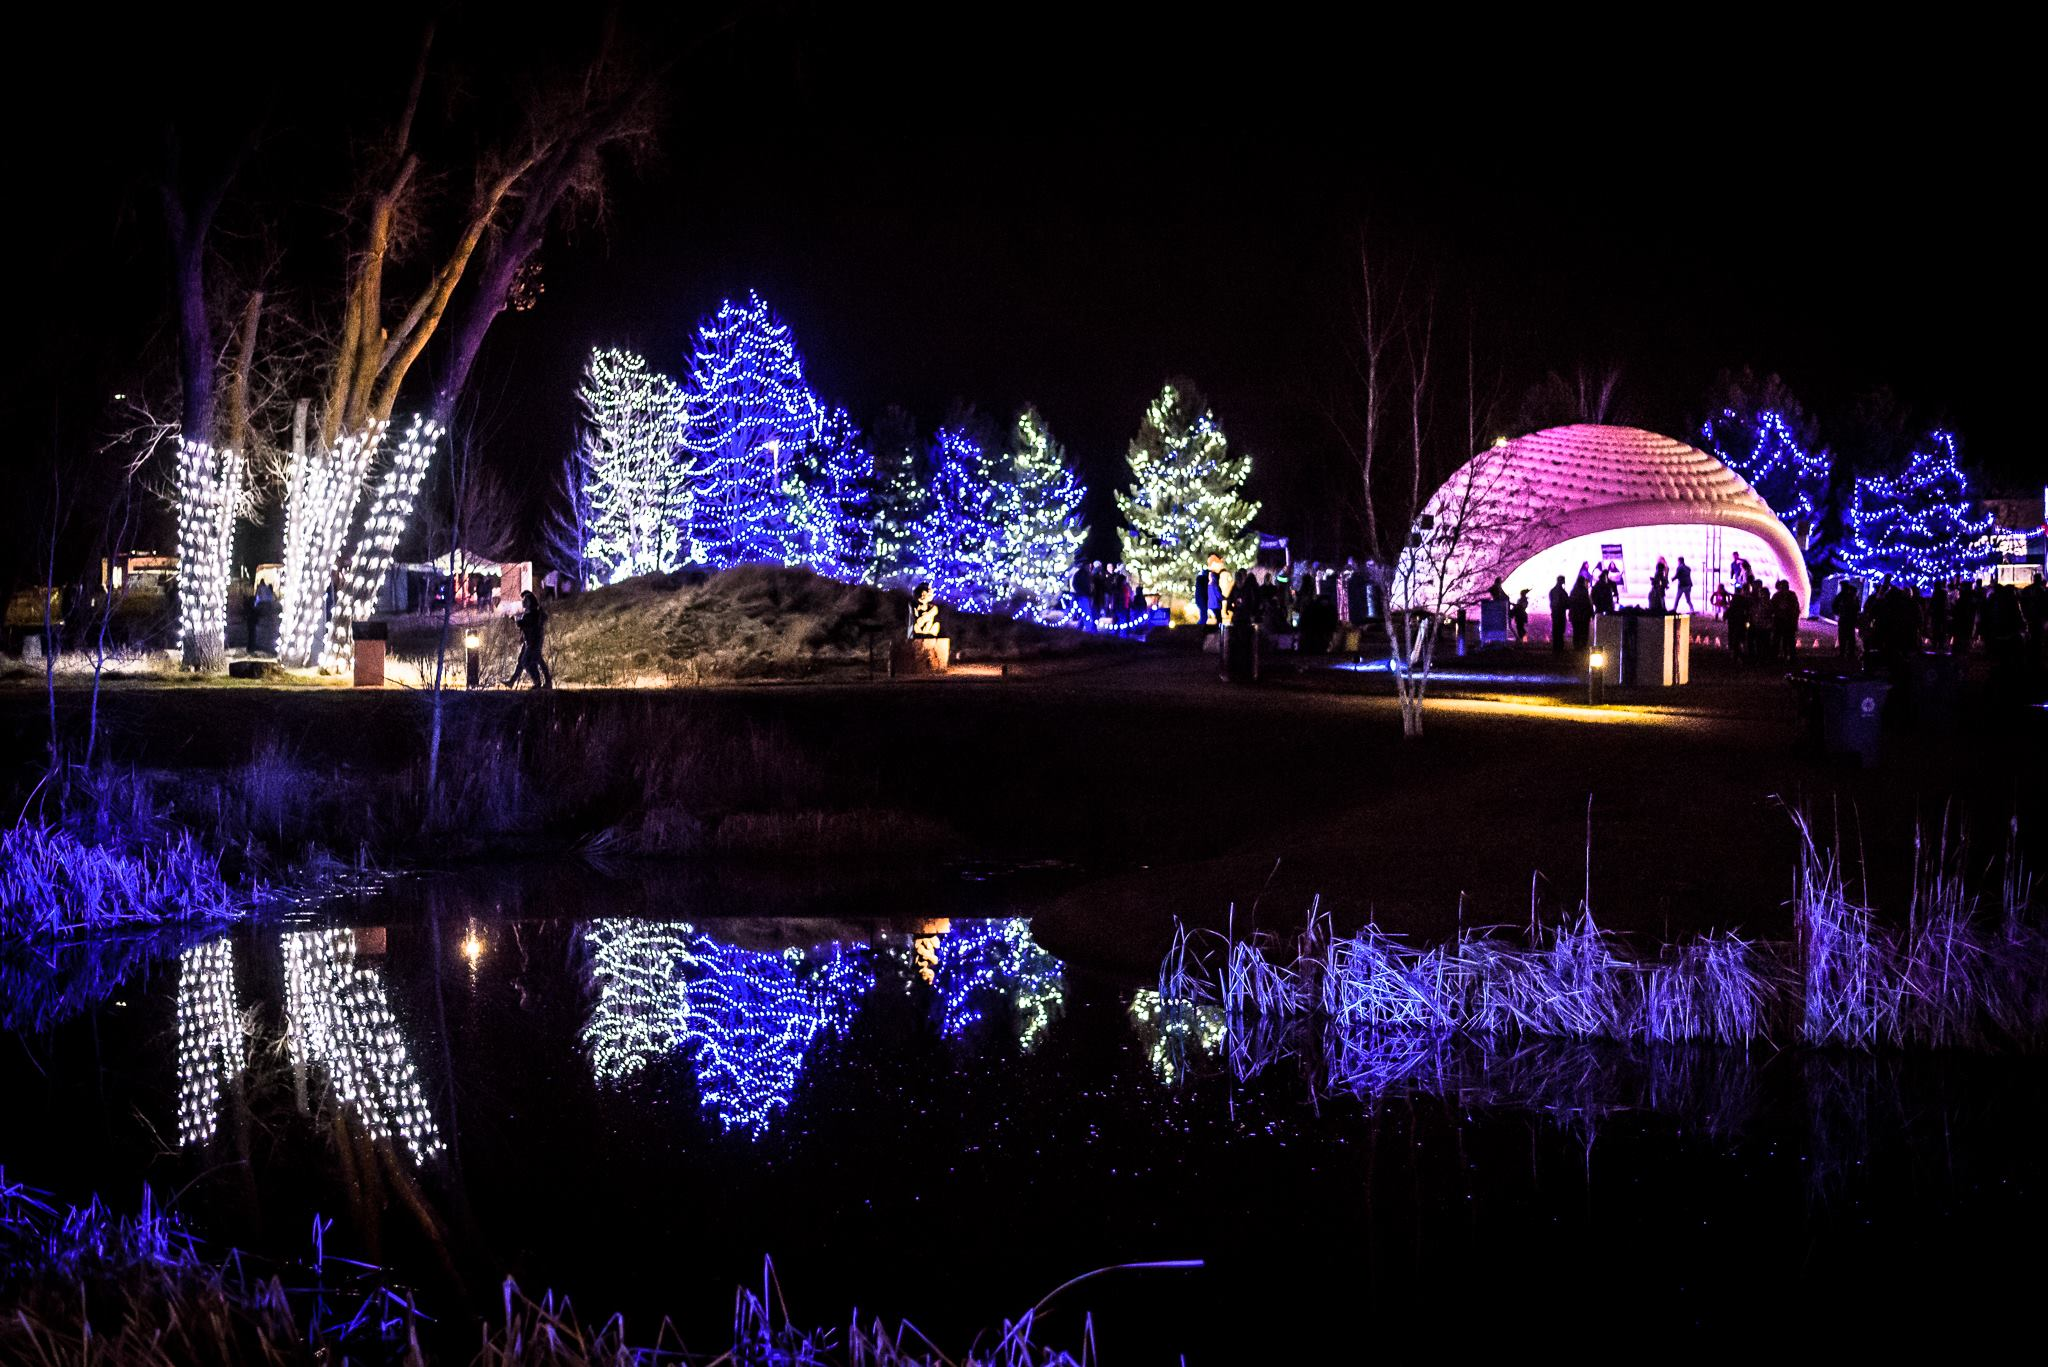 The Chapungu Sculpture Park In Colorado Is A Free Event With 80,000 Christmas Lights